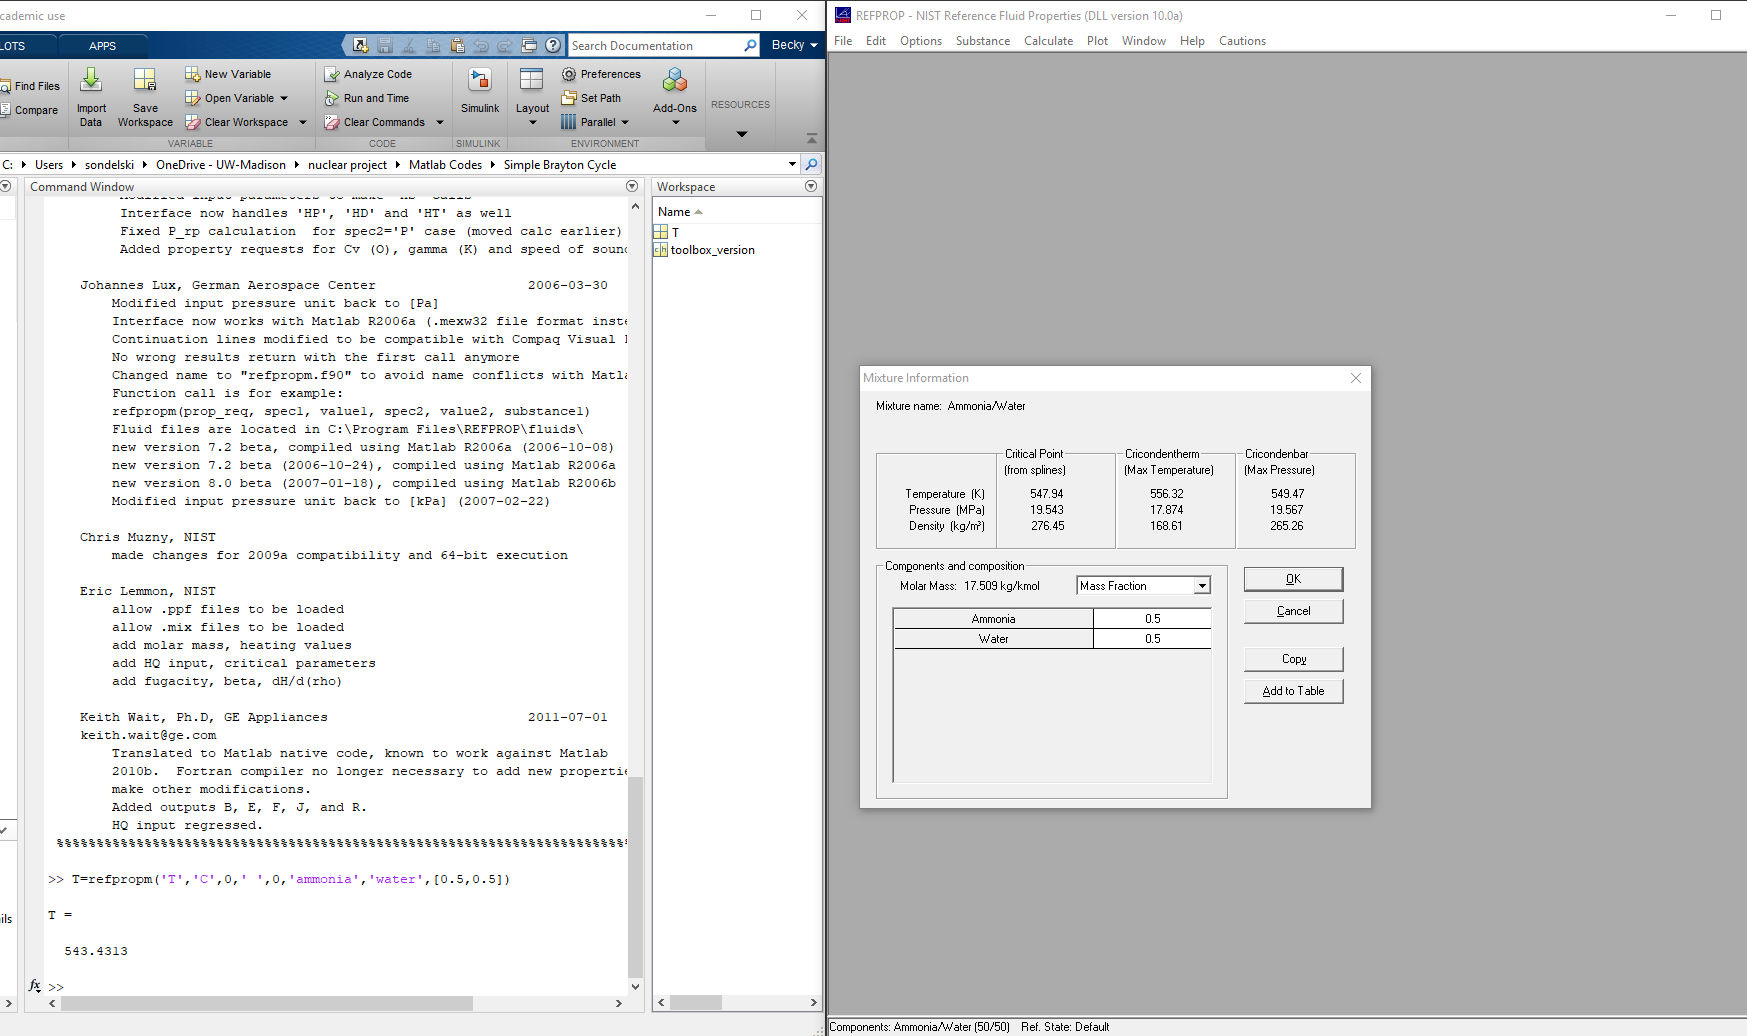 Critical points differ between matlab and refprop call